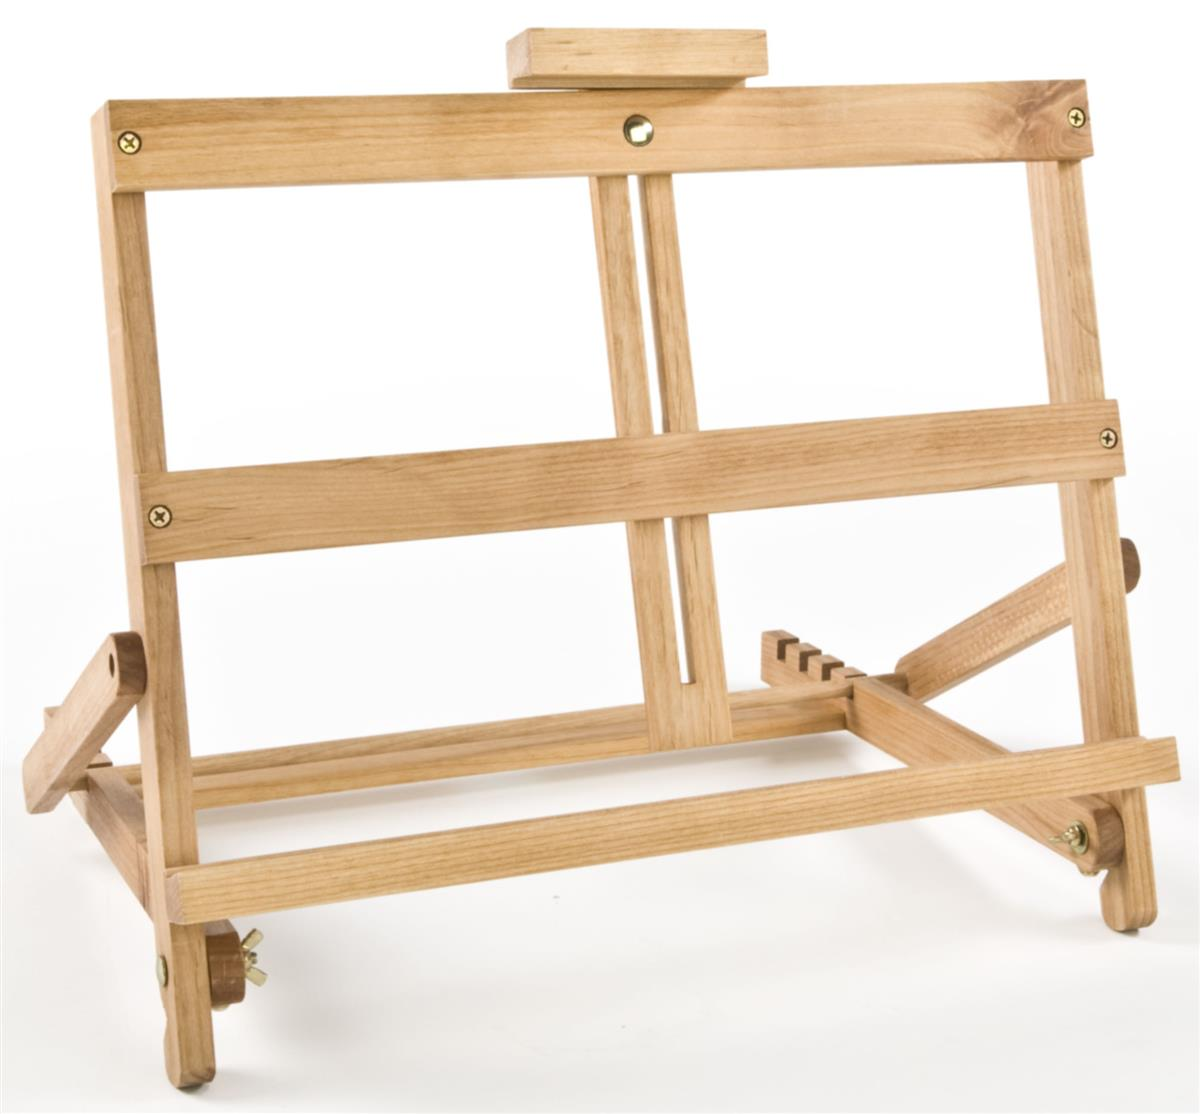 Folding Easel Solid Beech Wood Frame Display